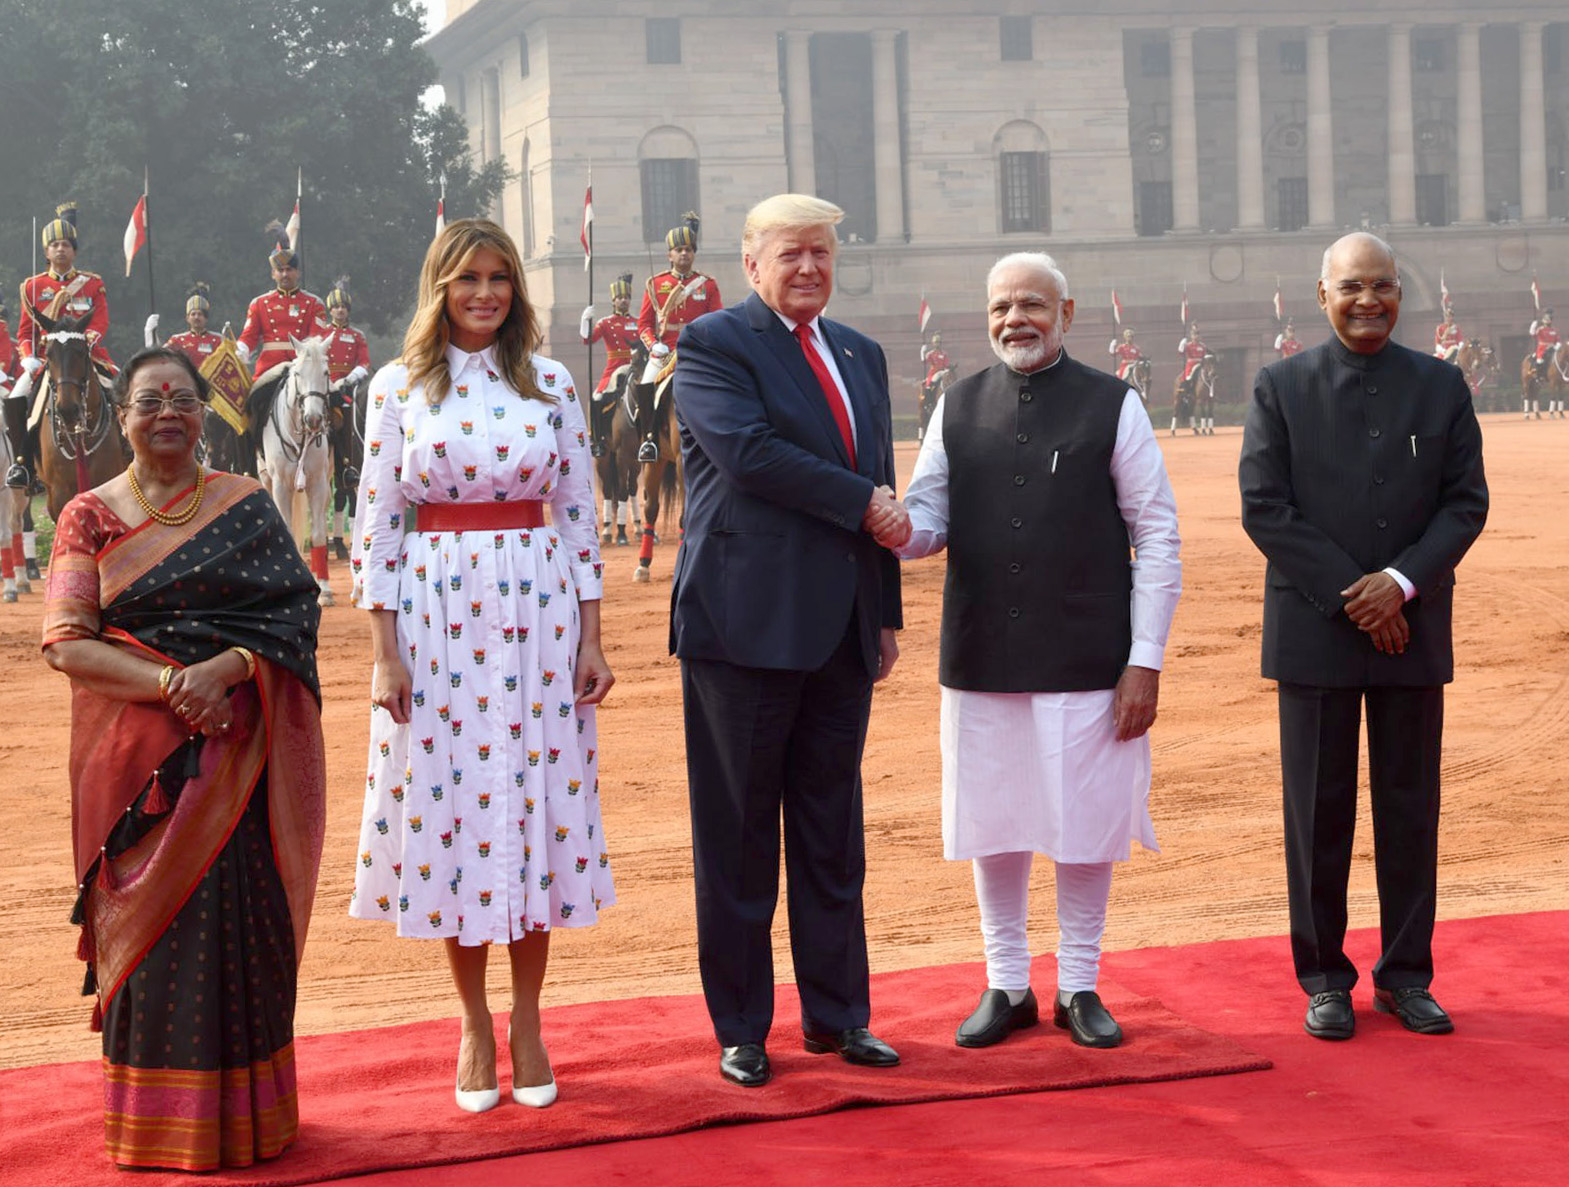 The President of United States of America (USA), Mr. Donald Trump and First Lady Mrs. Melania Trump plant a tree sapling at the Samadhi of Mahatma Gandhi, at Rajghat, in Delhi on February 25, 2020. The Minister of State for Housing & Urban Affairs, Civil Aviation (Independent Charge) and Commerce & Industry, Shri Hardeep Singh Puri is also seen.